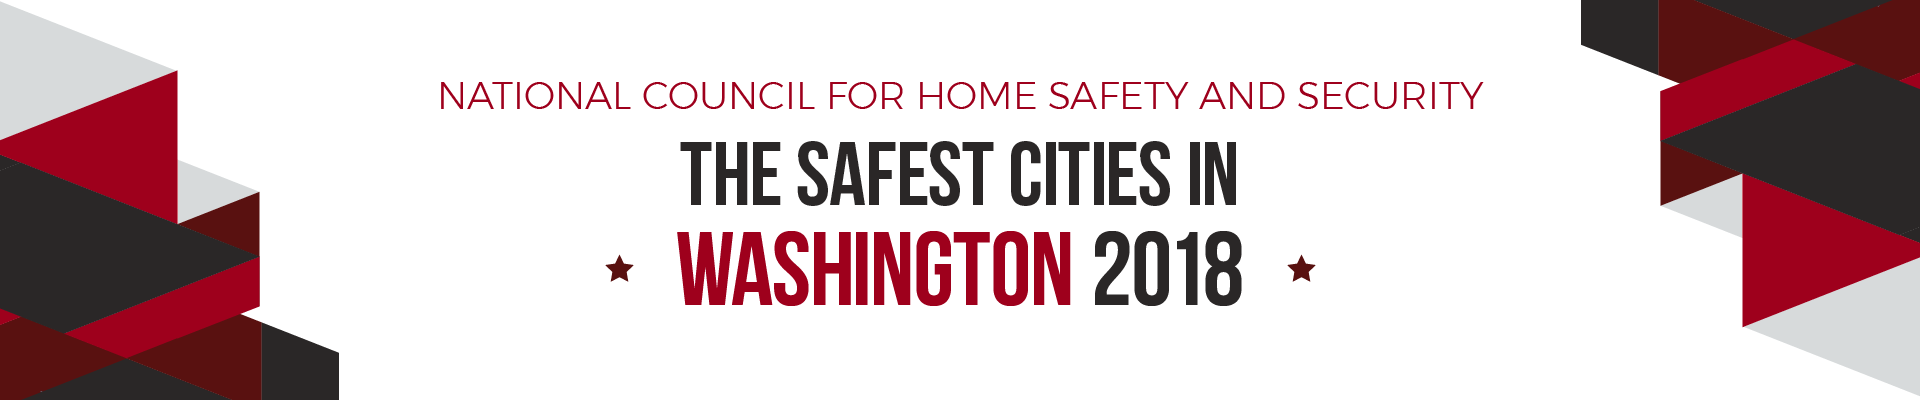 washington safe cities 2018